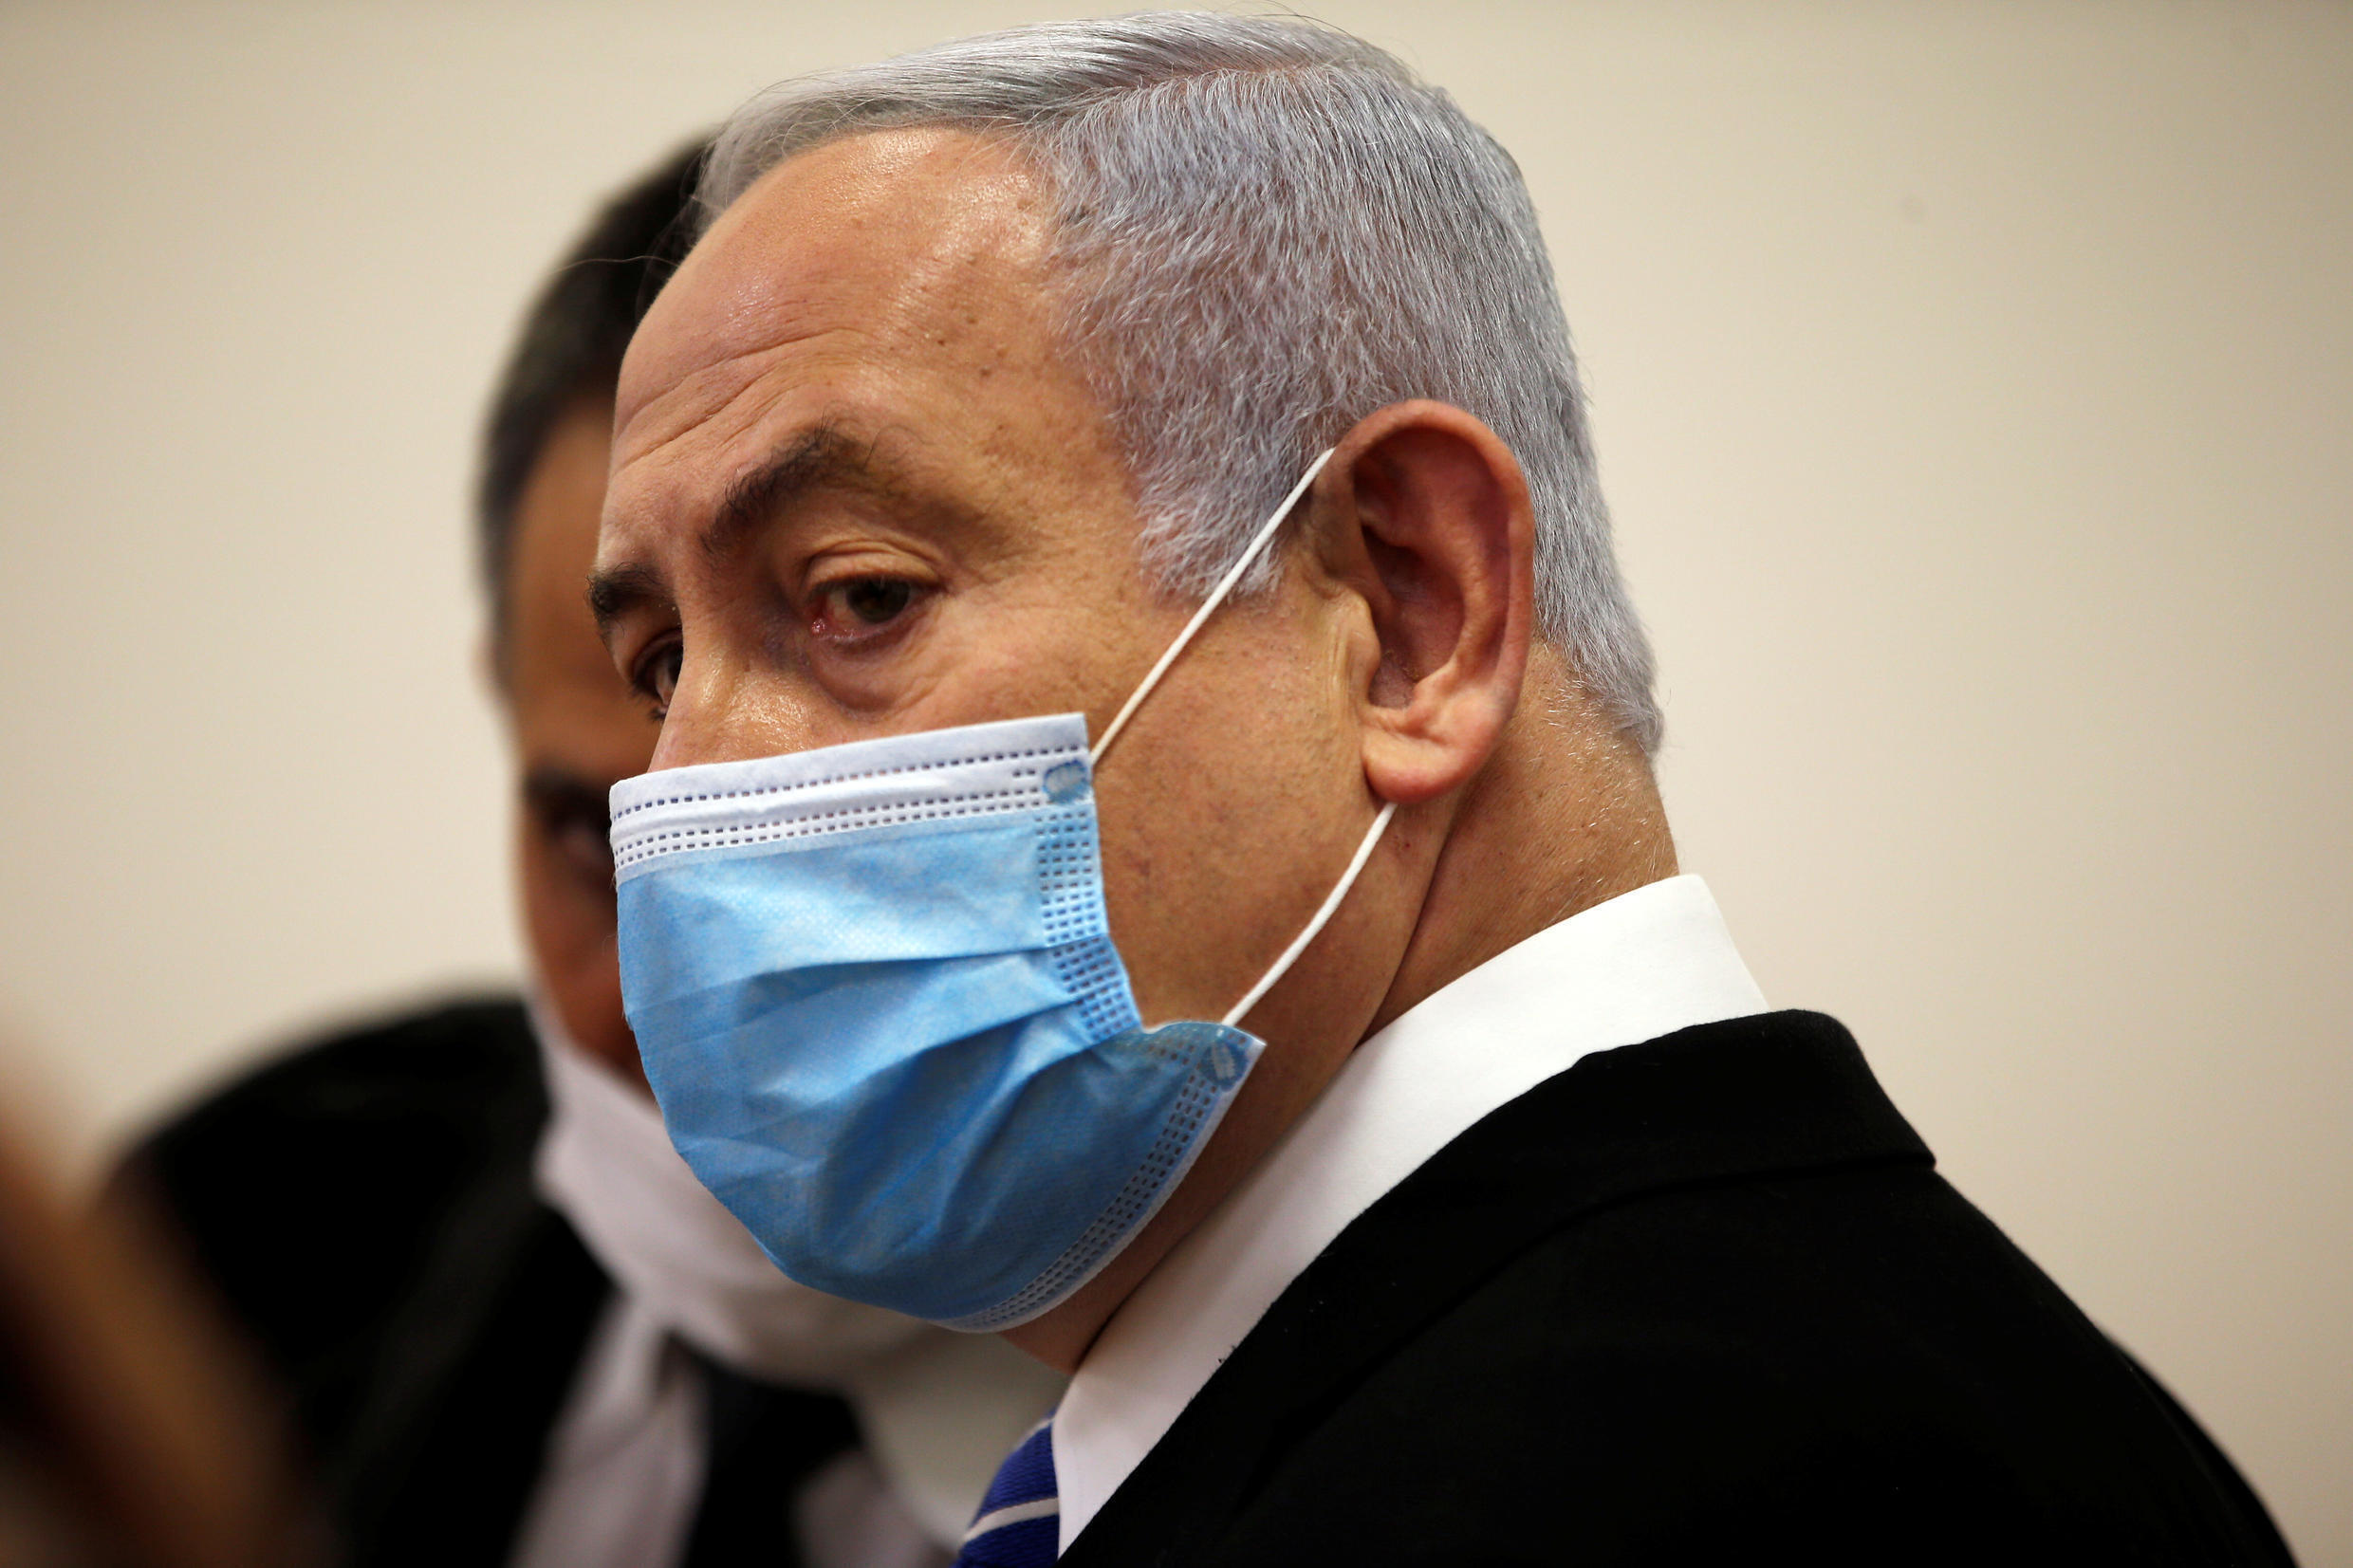 Israeli Prime Minister Benjamin Netanyahu, wearing a face mask, looks on while standing inside the court room as his corruption trial opens at the Jerusalem District Court May 24, 2020.